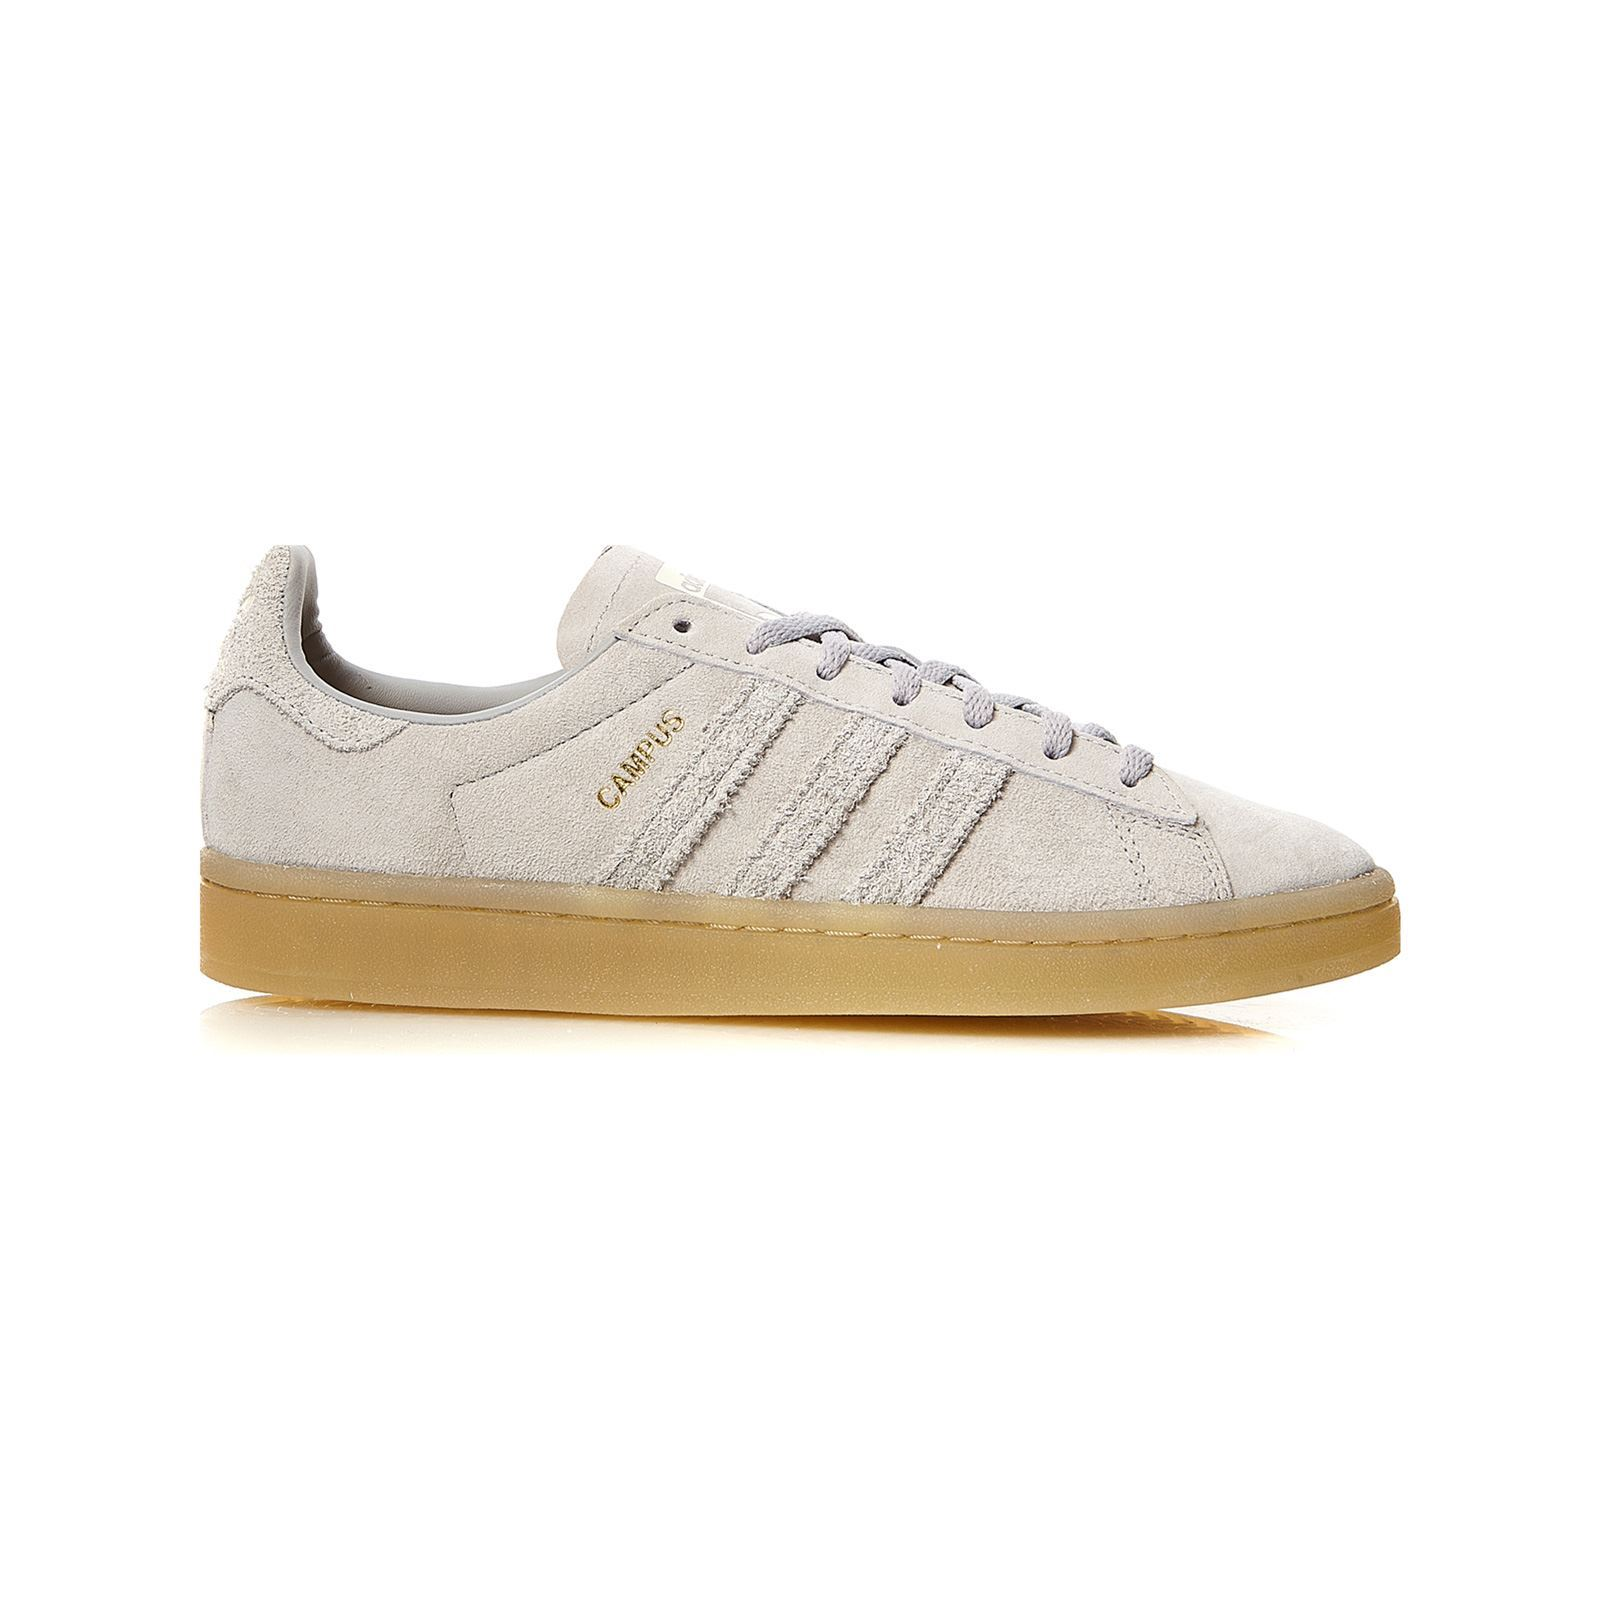 uk availability info for best sneakers Campus W - Baskets en cuir - gris clair